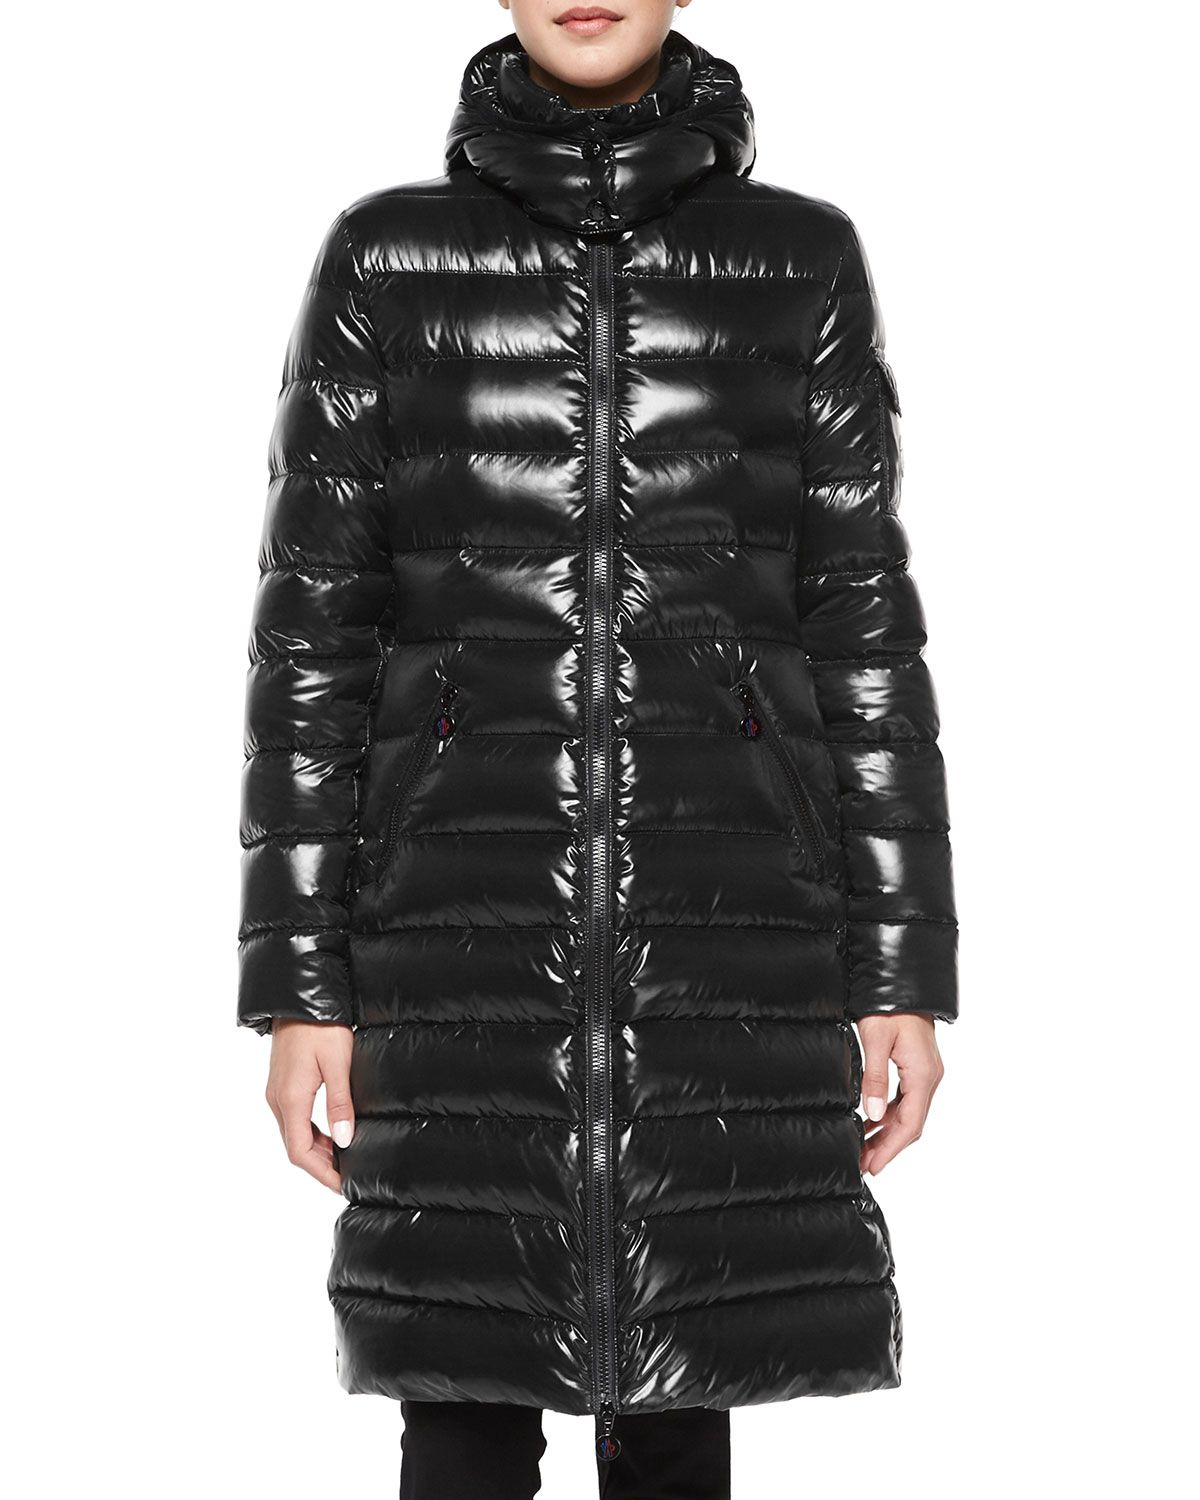 Moncler Moka Shiny Fitted Puffer Coat with Hood Puffer